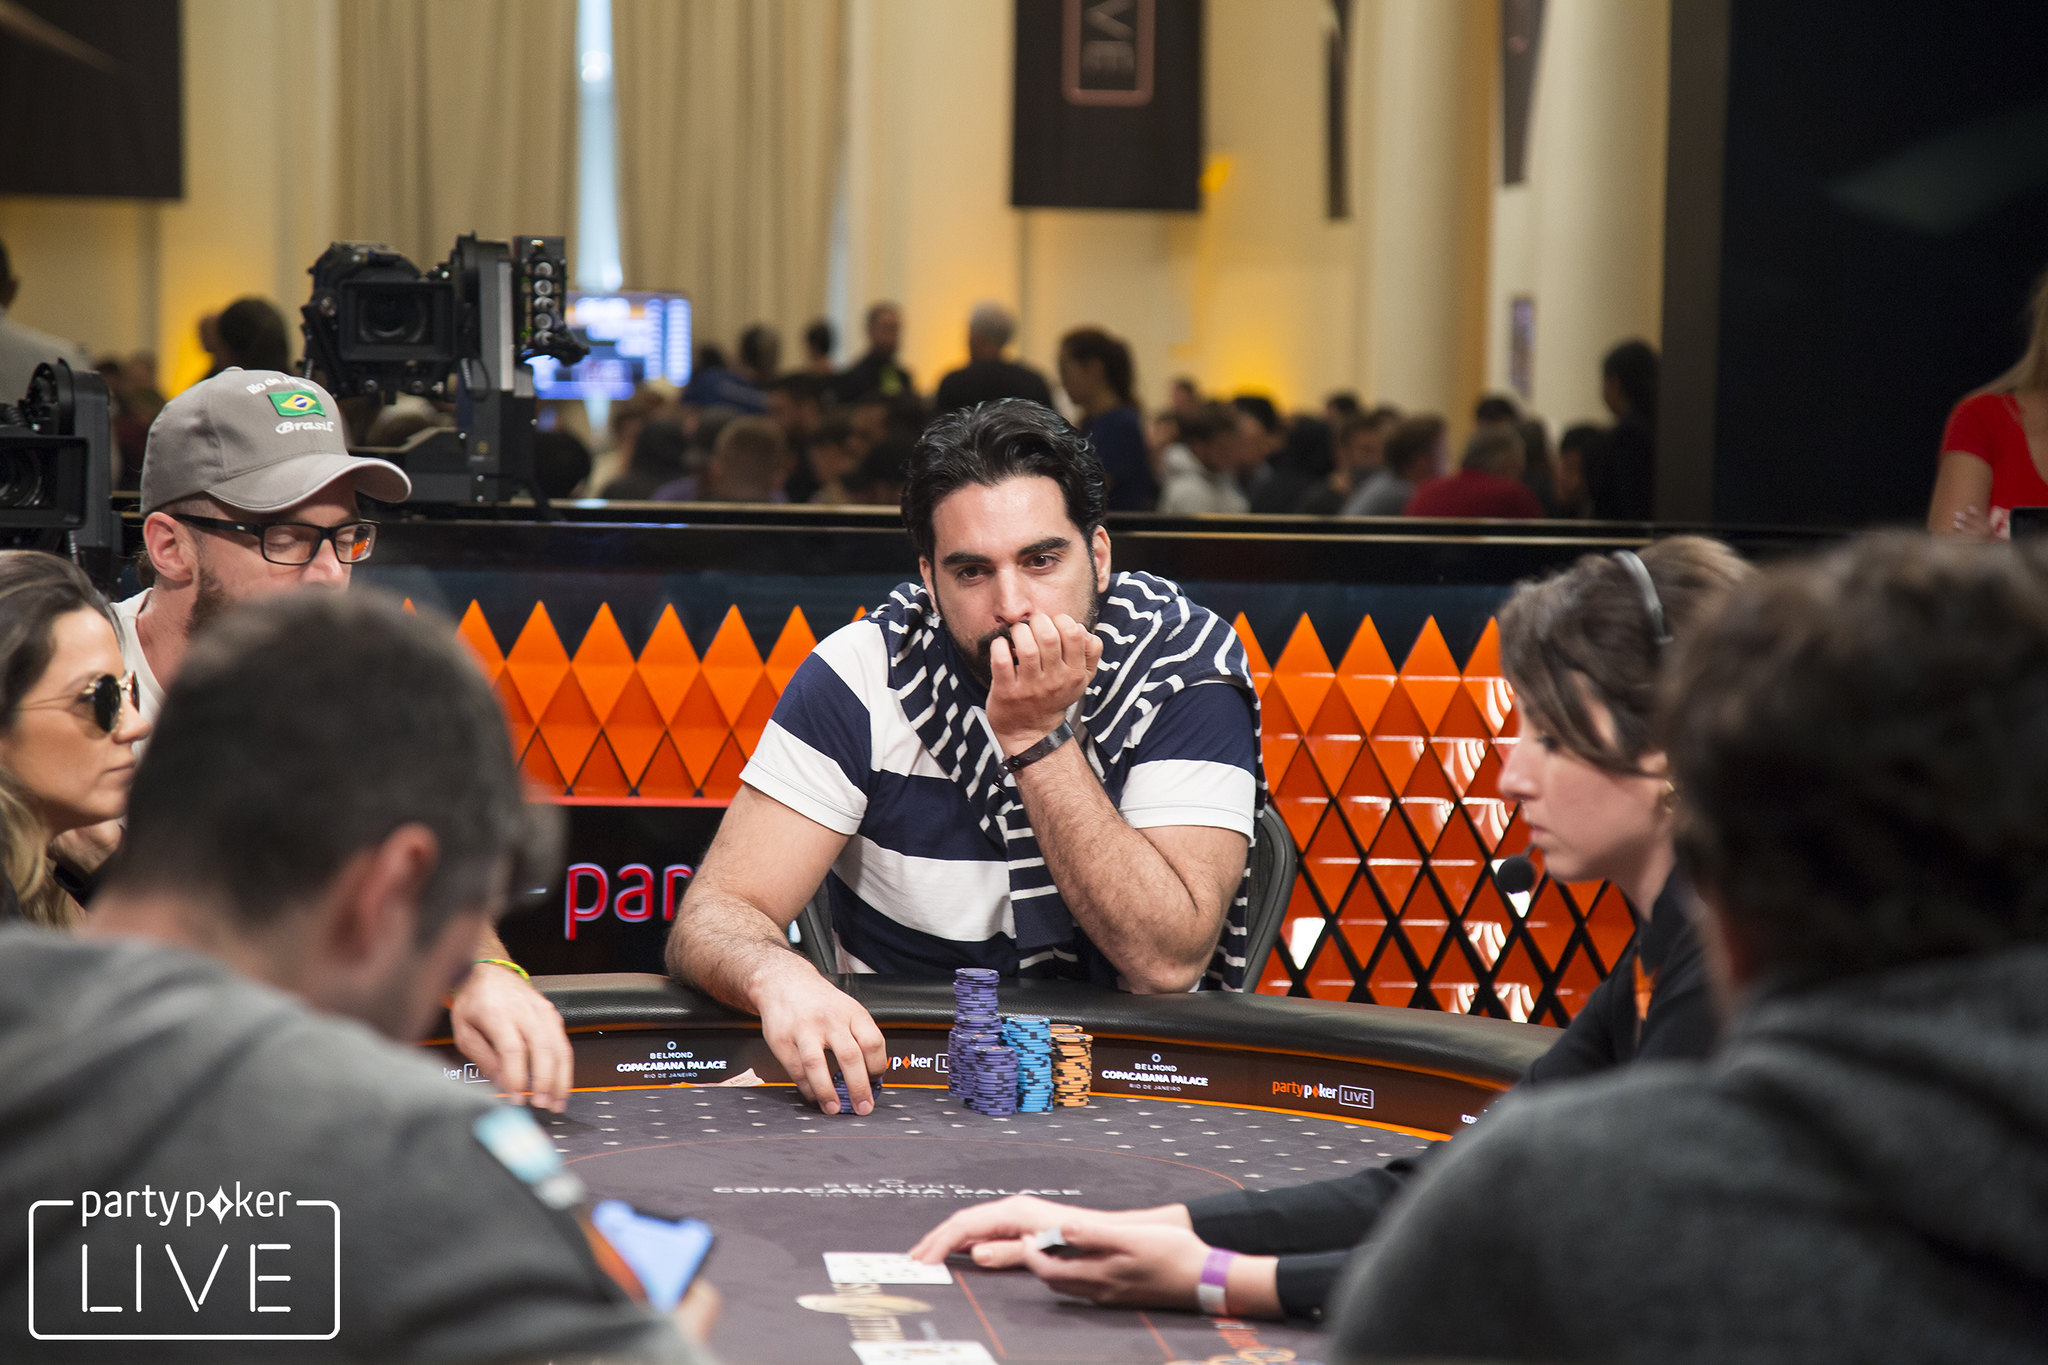 Alexandros Kolonias wins Purple Jacket at 2020 Poker Masters Online